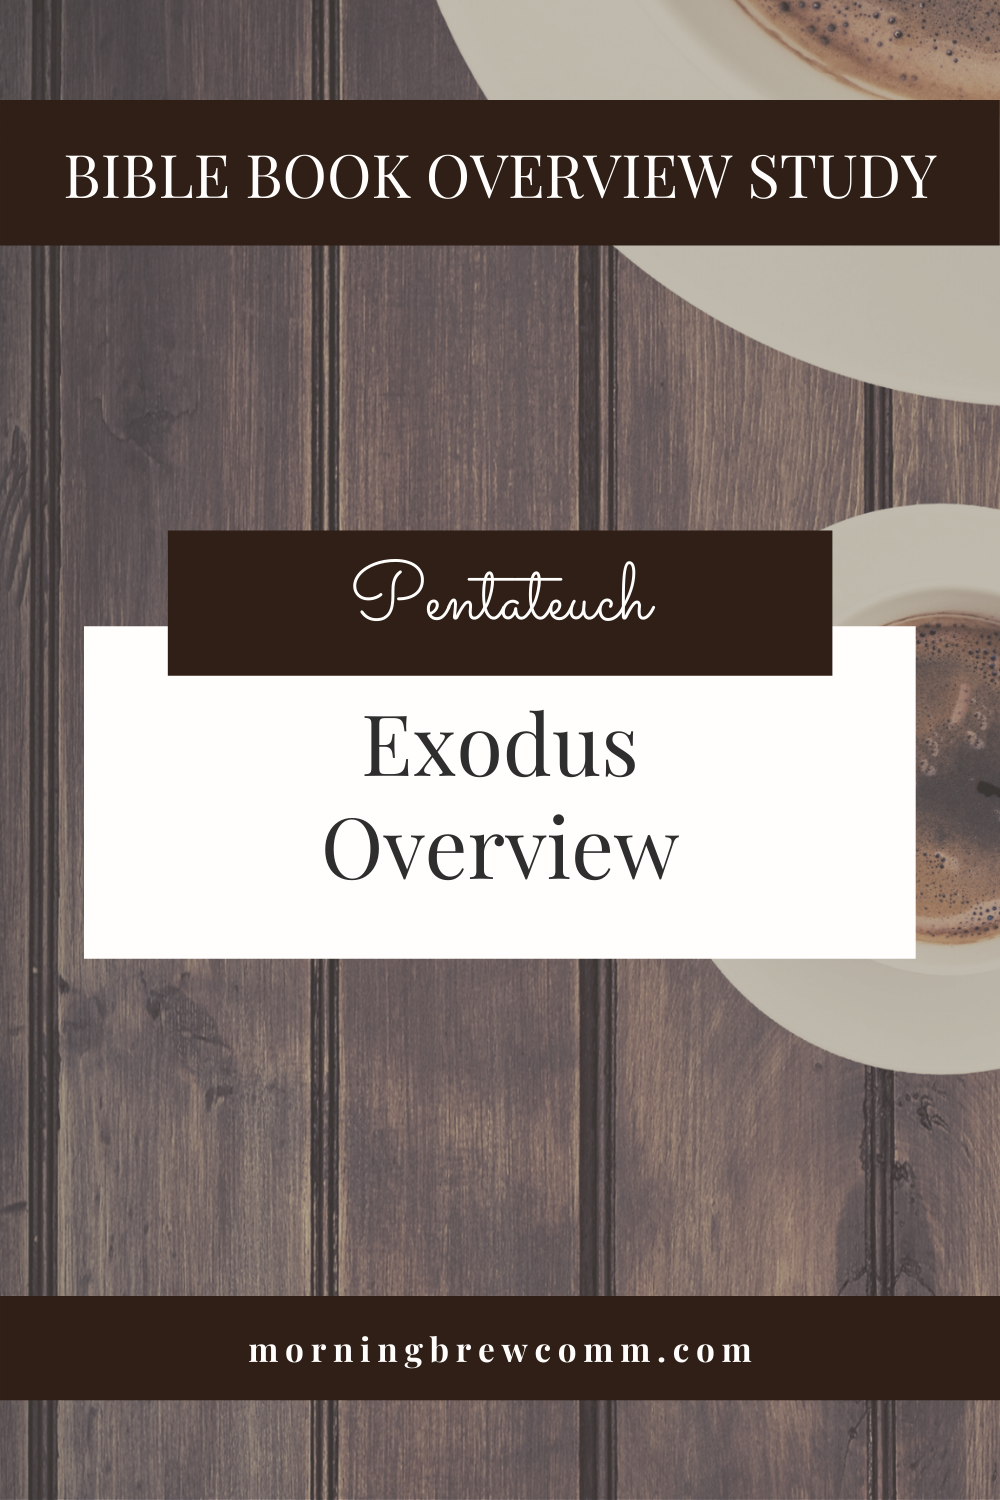 Exodus Pentateuch Bible Book Overview